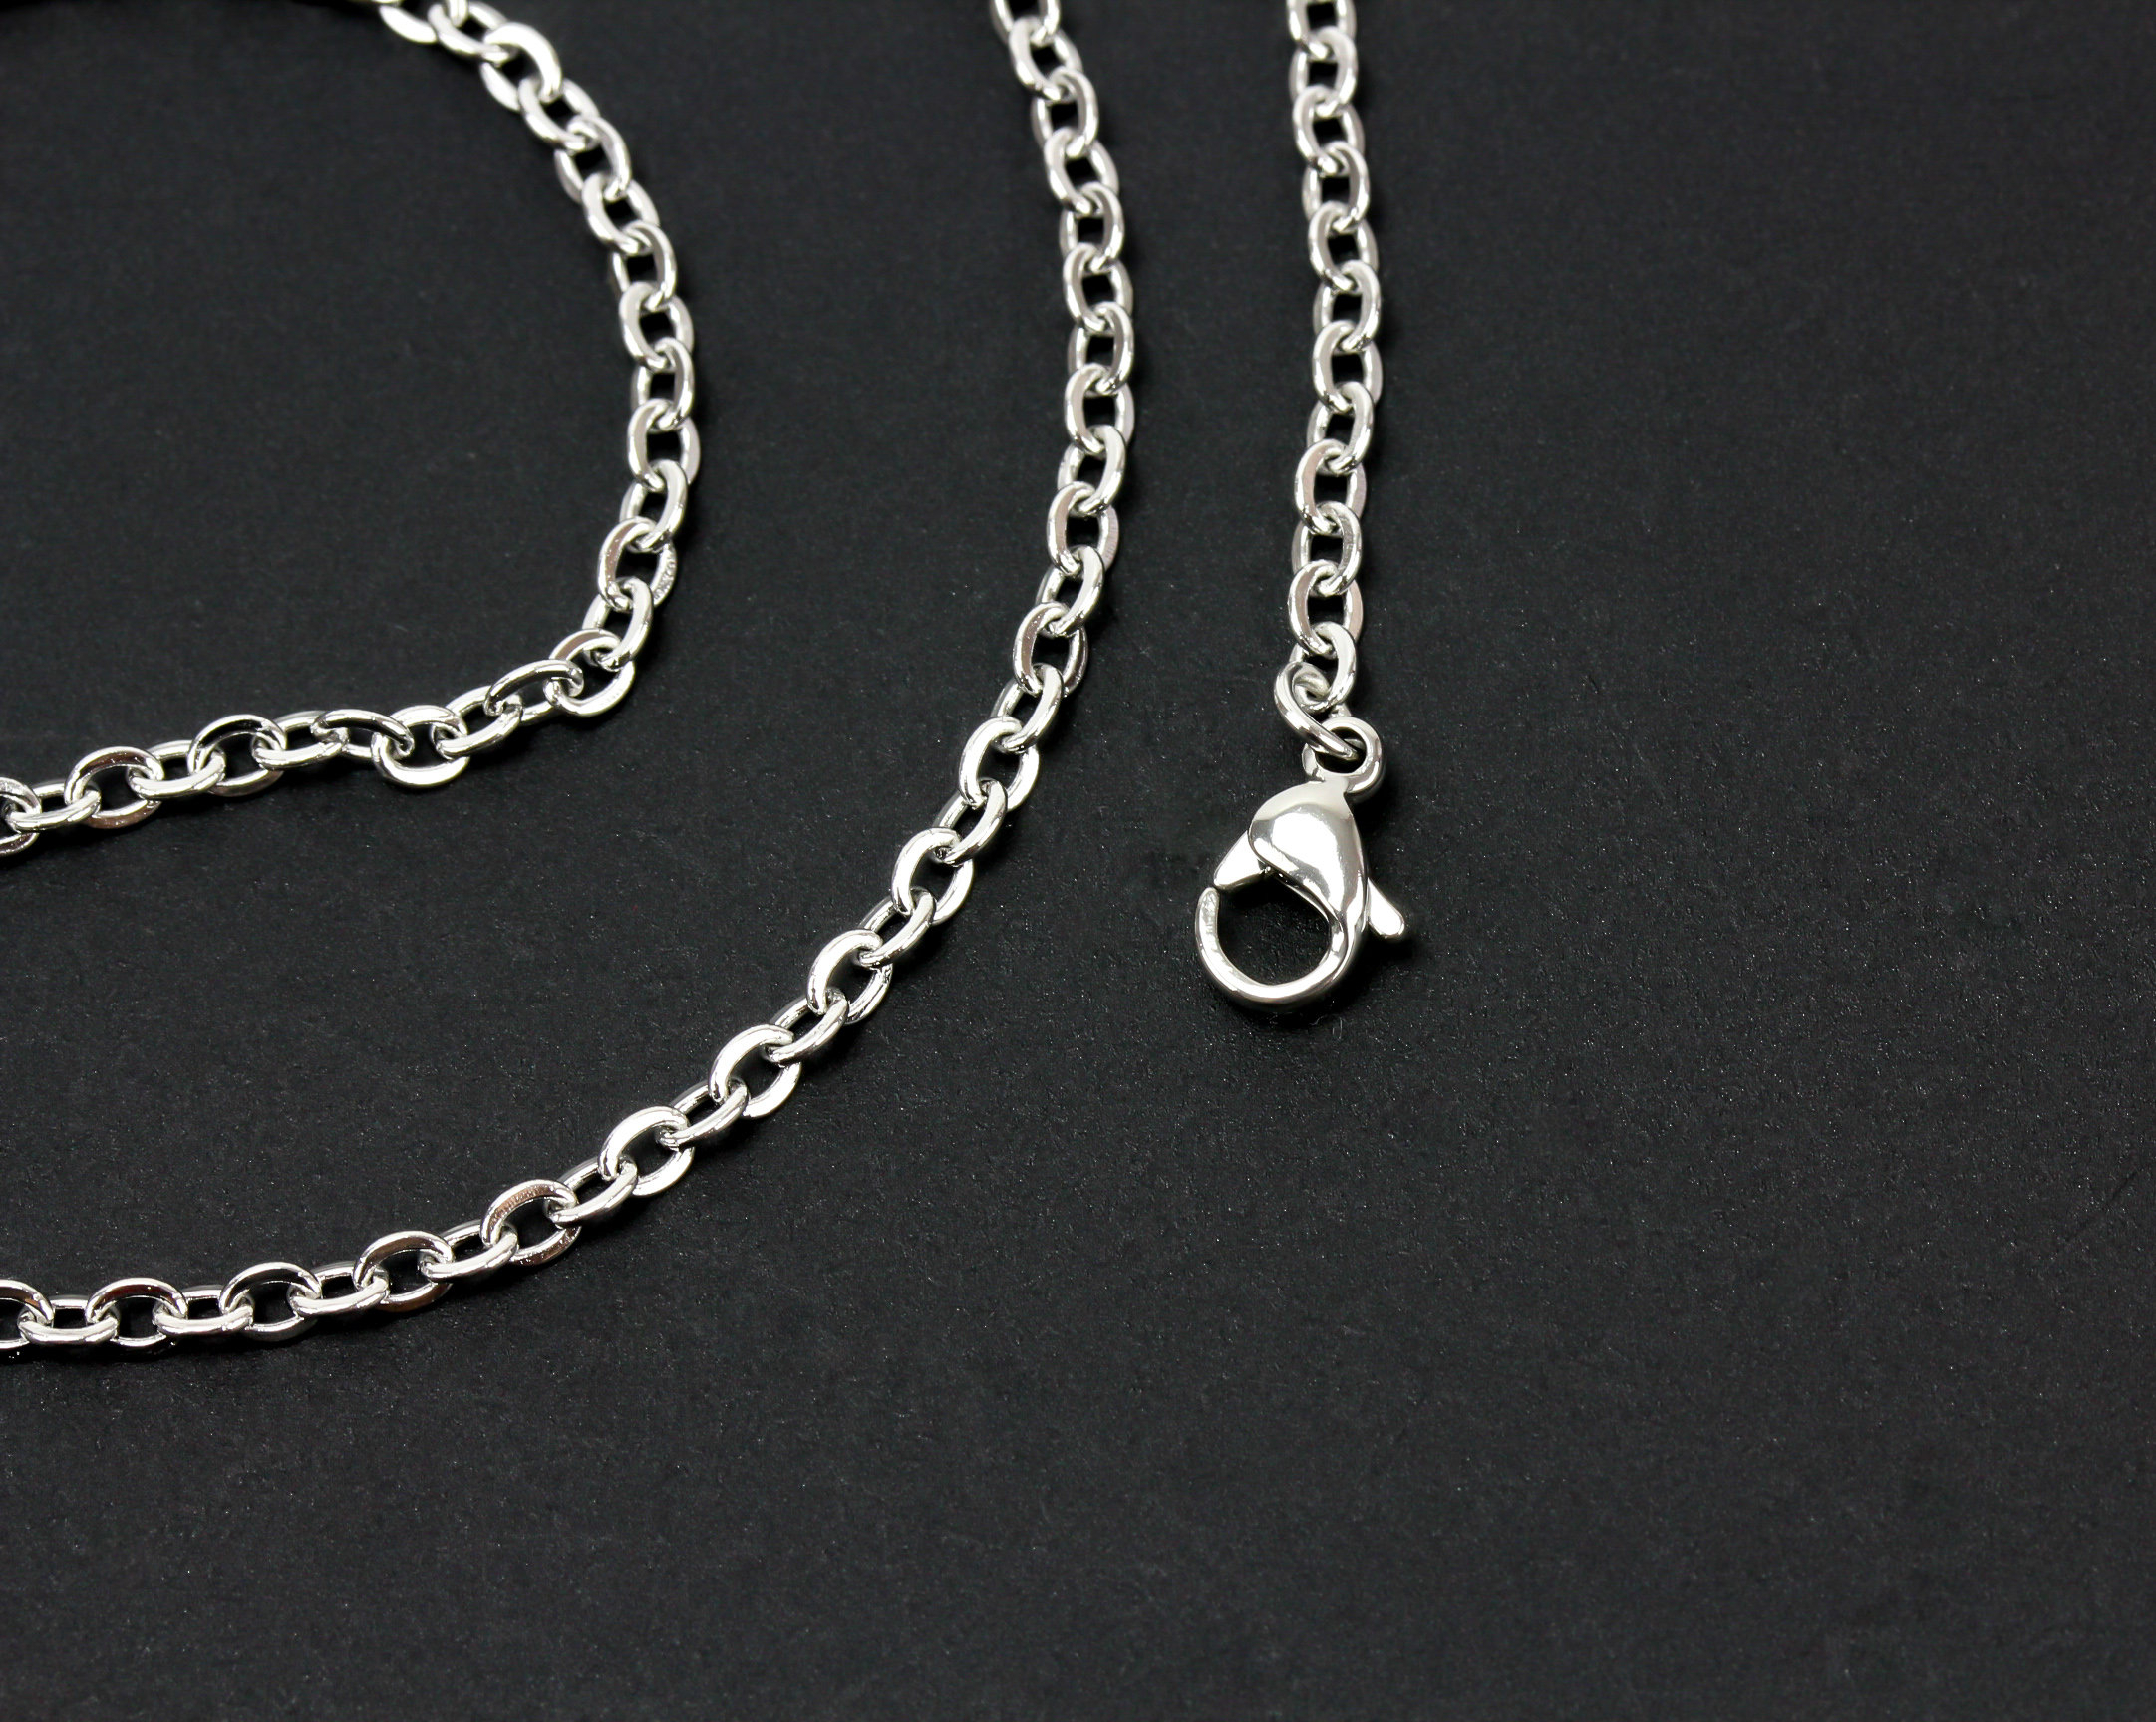 """1 Stainless Steel Link Cable Chain Necklace 45Cm (17 5/8"""") Long With  Lobster Claw Clasp Chain Link Size 3X (View 2 of 25)"""